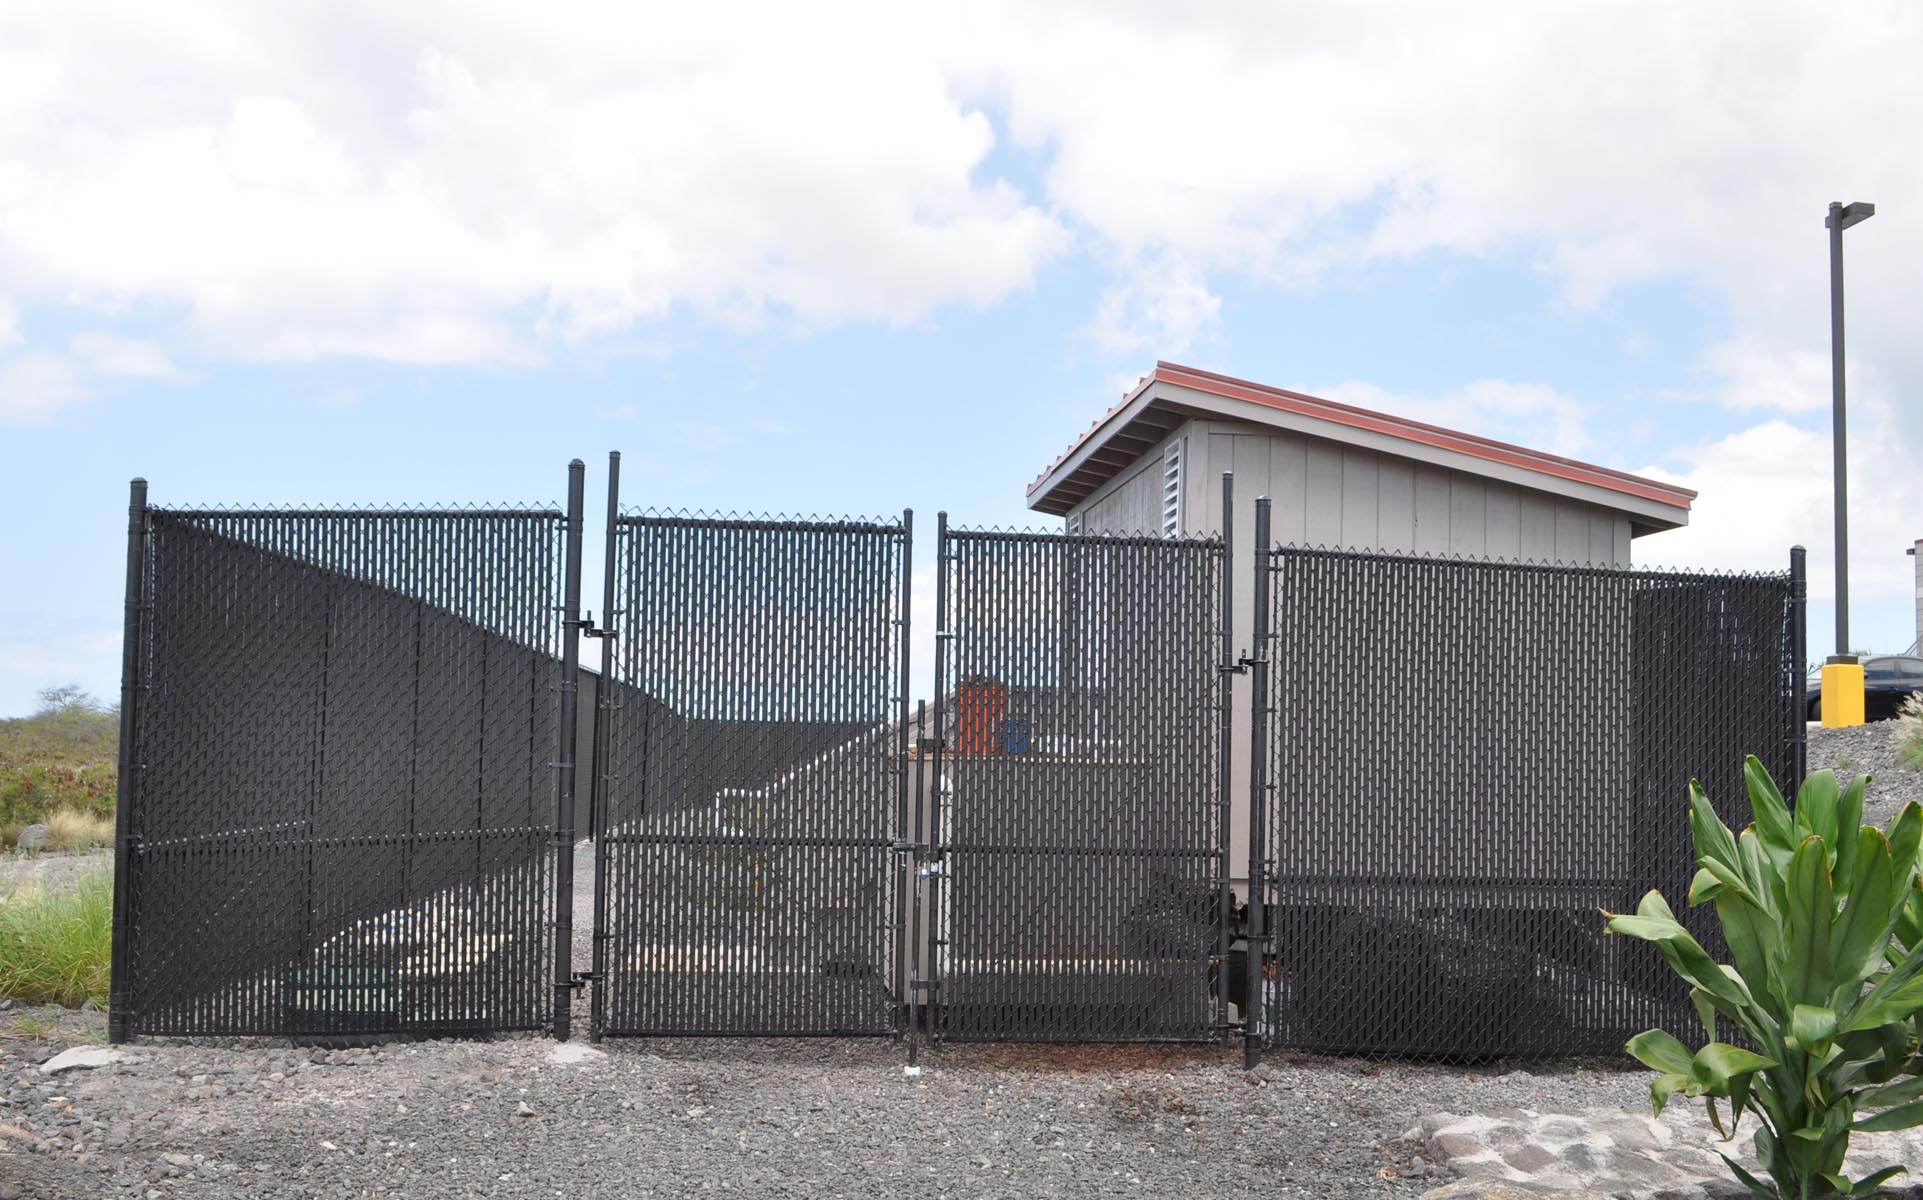 Chain Link Enclosure with Slats